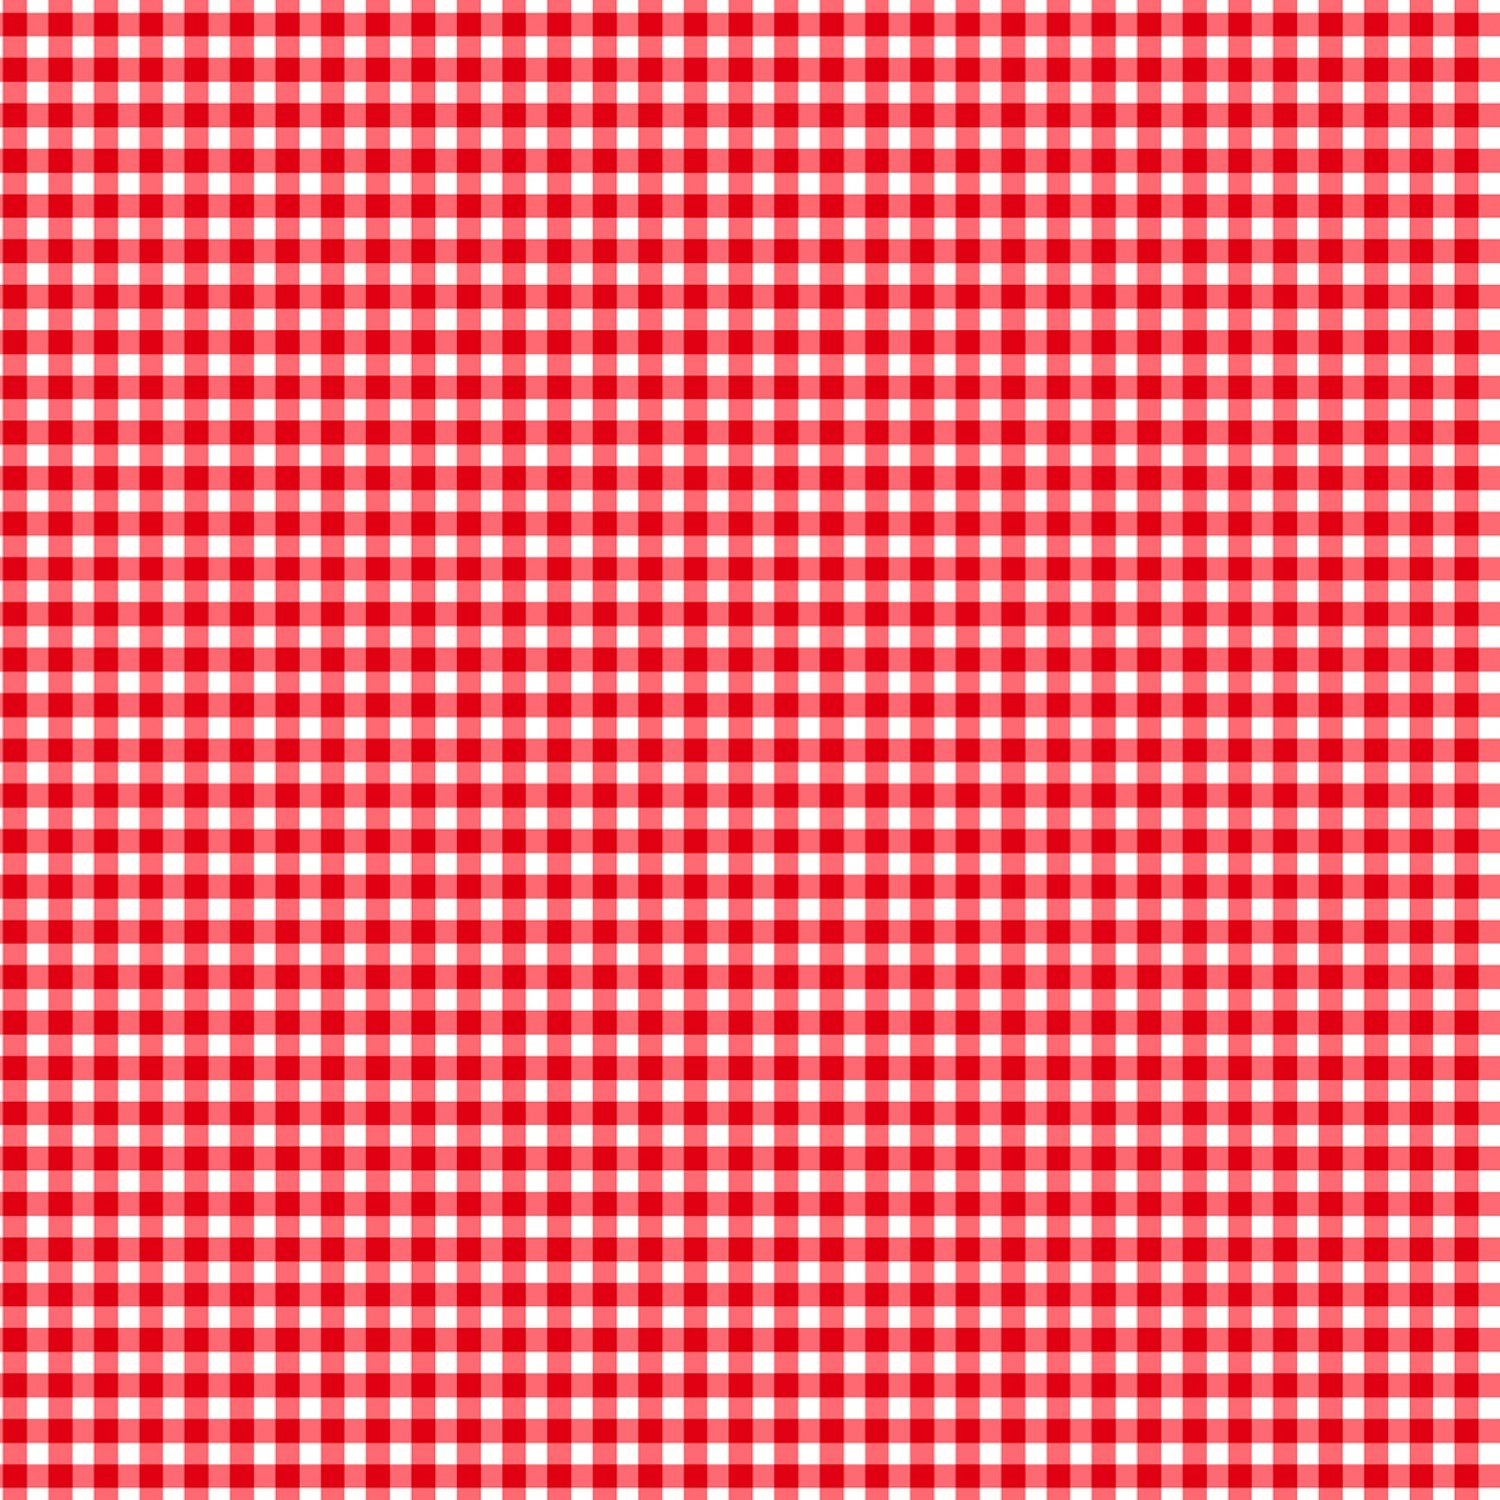 Gingham Check C7345 Red